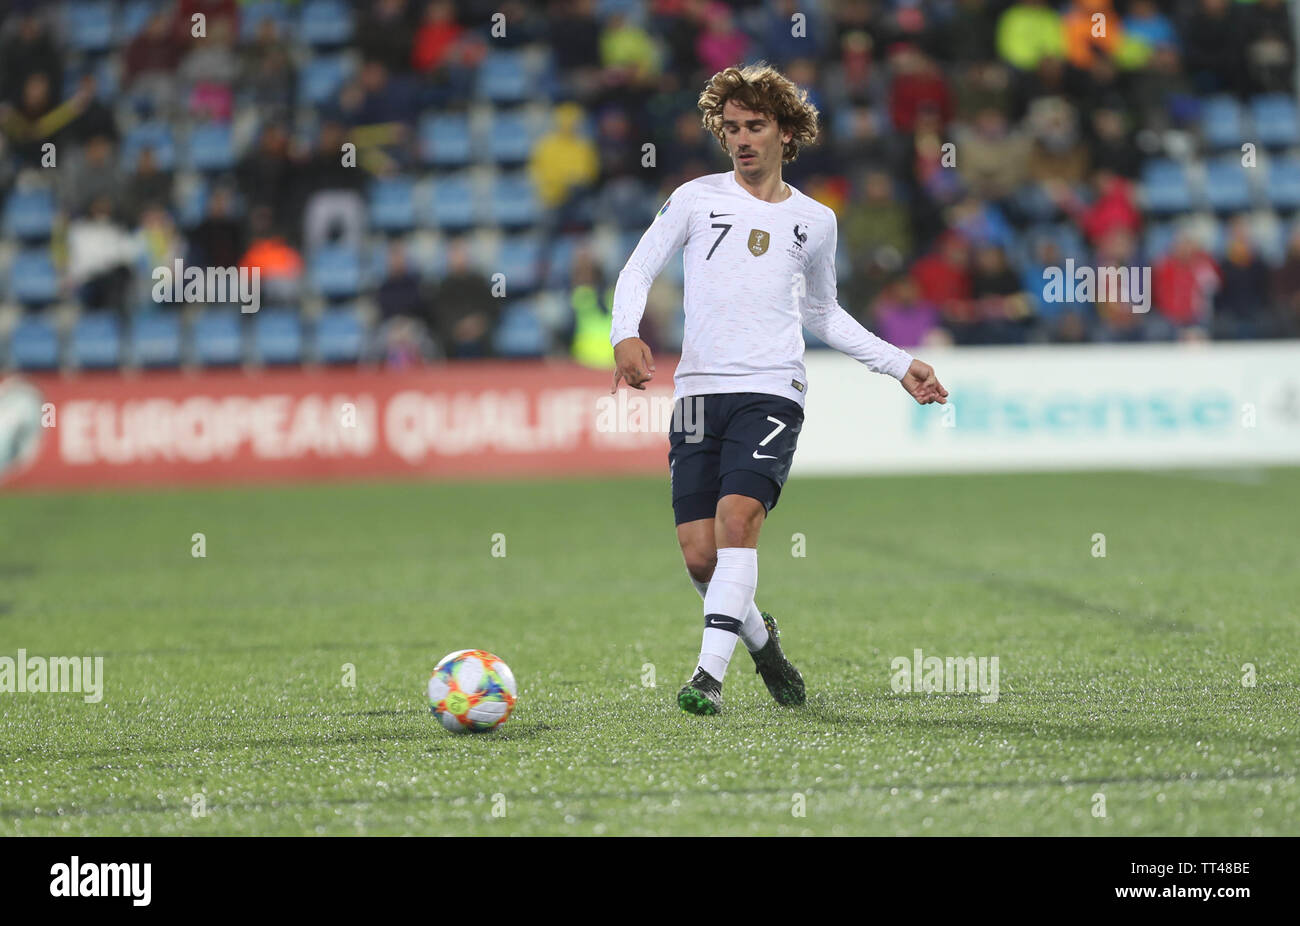 Antoine Griezmann of France during the UEFA Euro 2020 Qualifying Group H football match between Andorra and France on June 11, 2019 at Estadi Nacional in Andorra la Vella, Andorra - Photo Laurent Lairys / DPPI Stock Photo